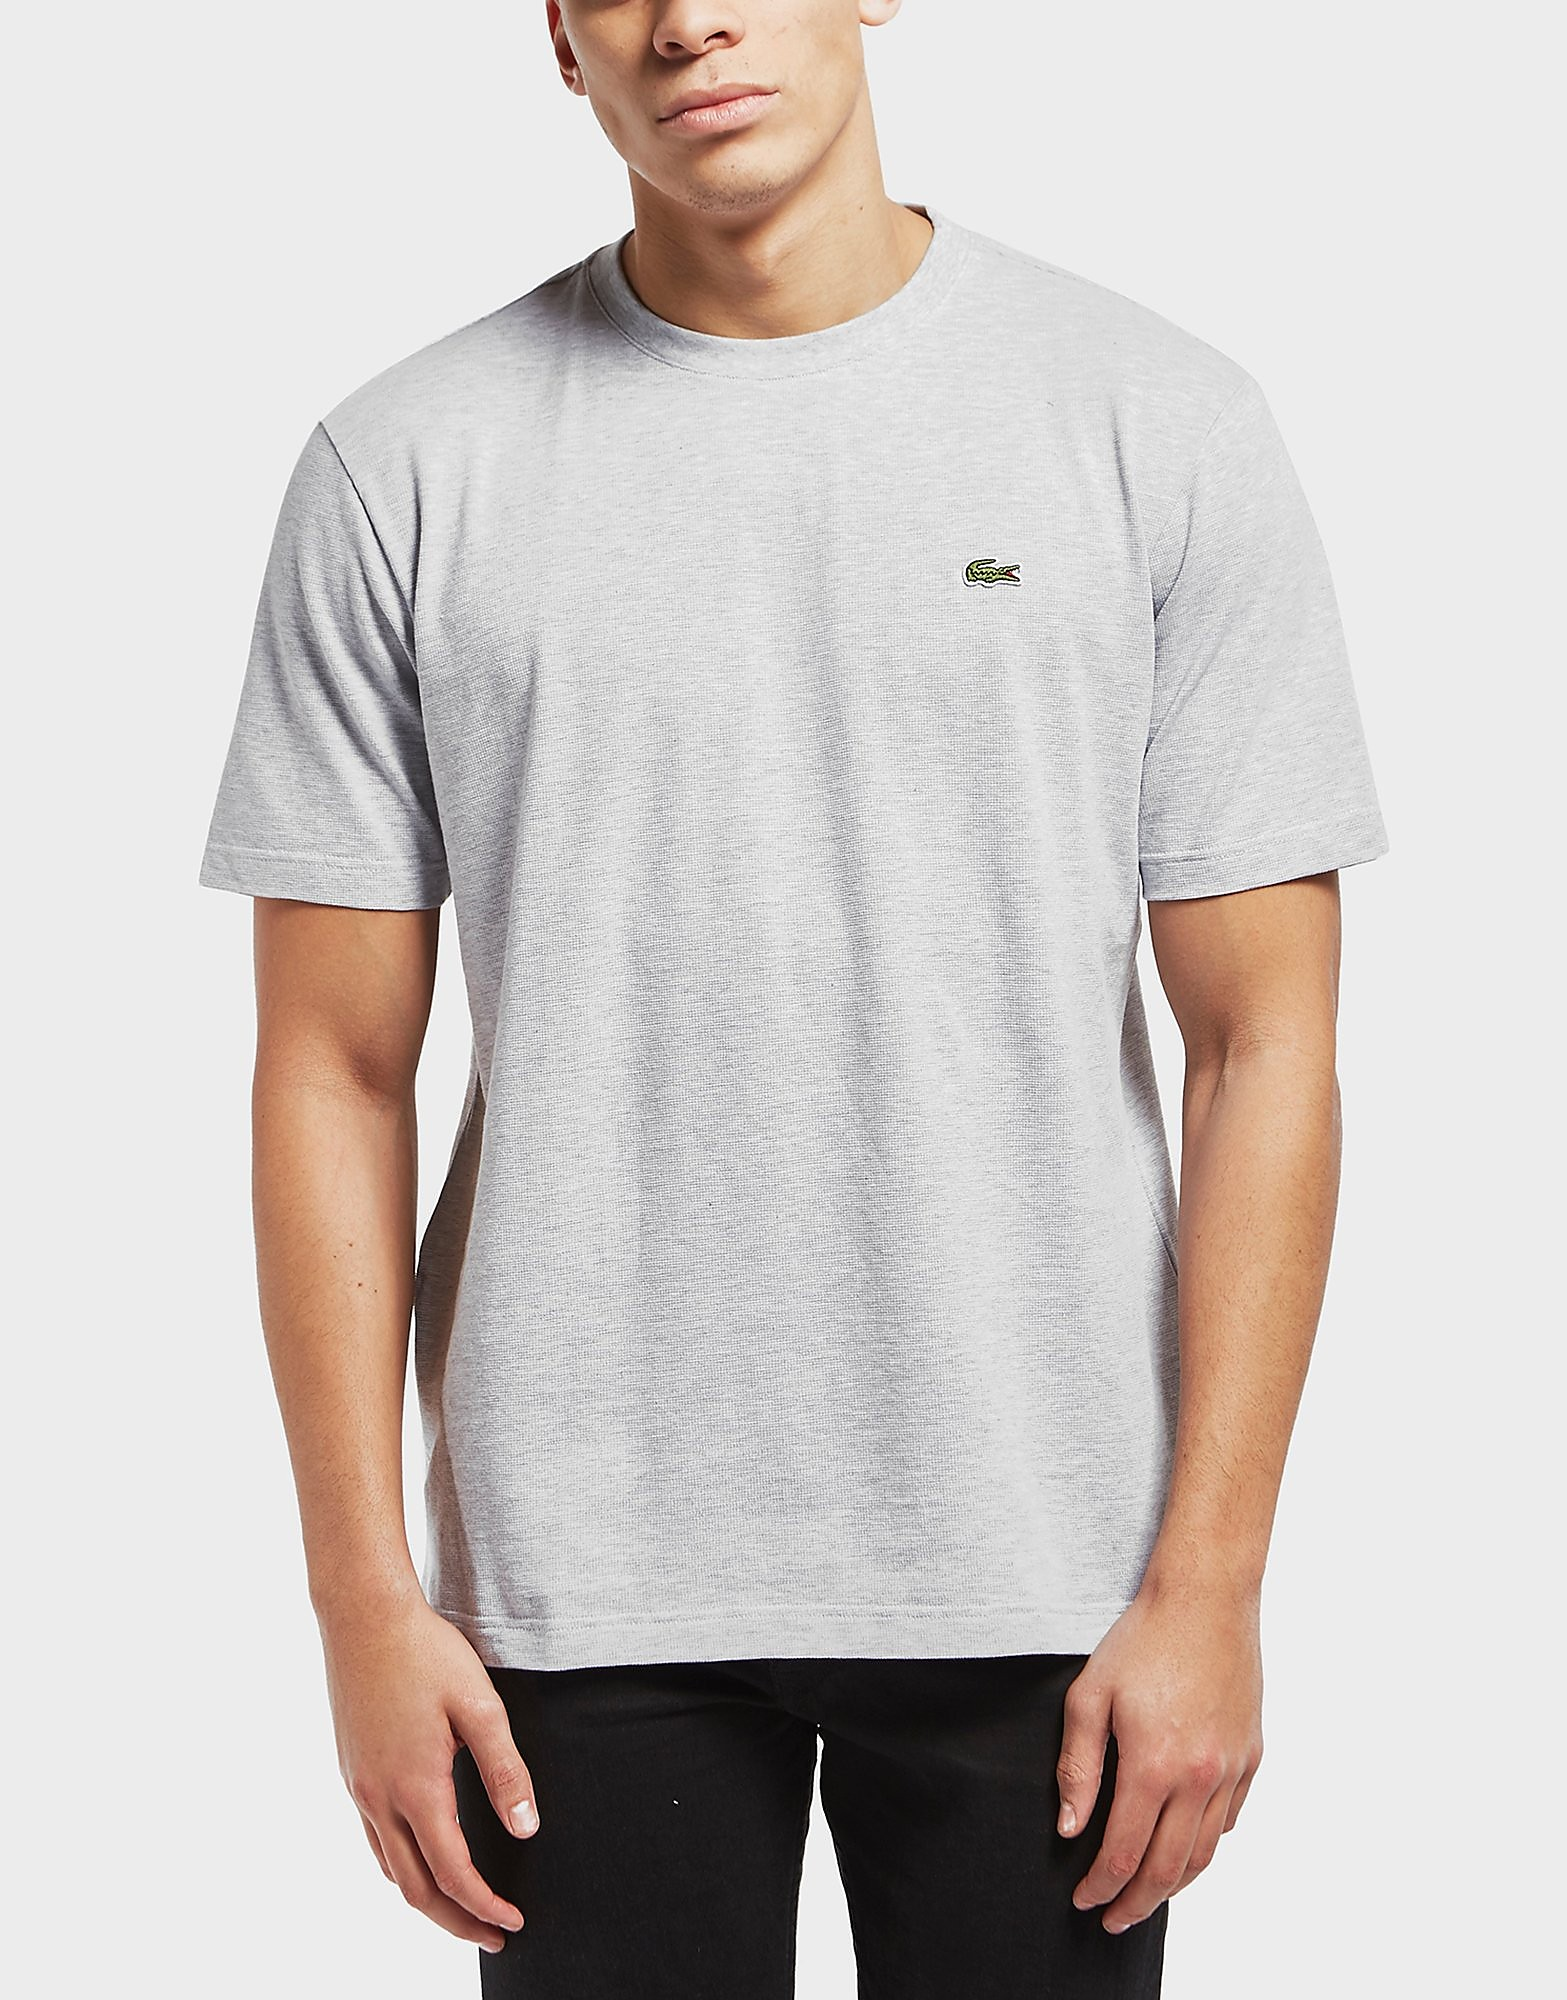 Lacoste Alligator Short Sleeve Crew T-Shirt